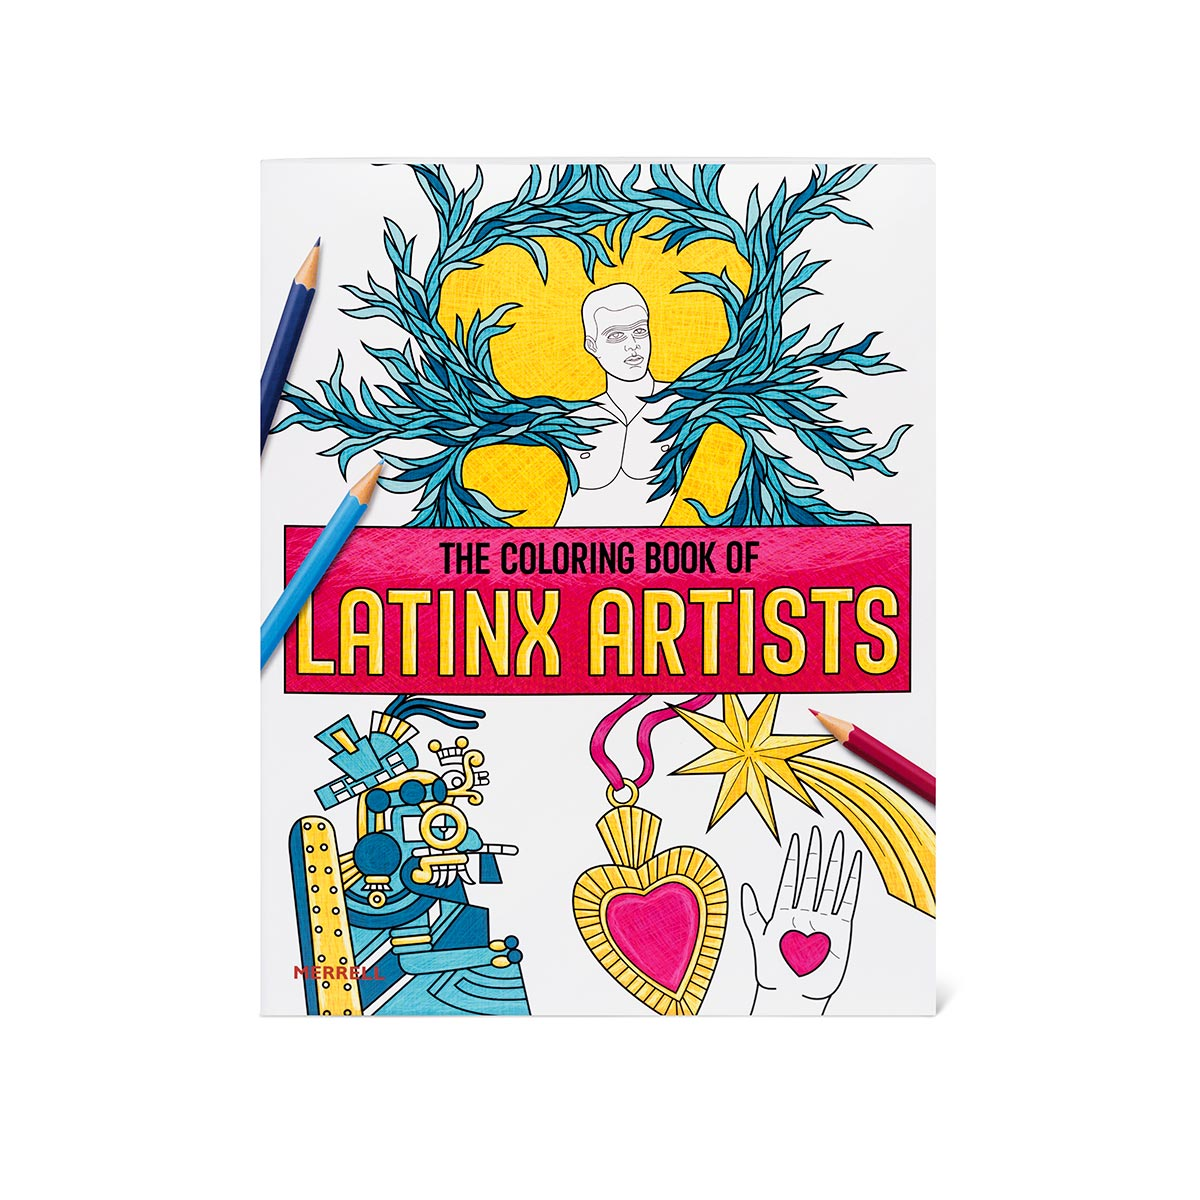 The cover of The Coloring Book of Latinx Artists